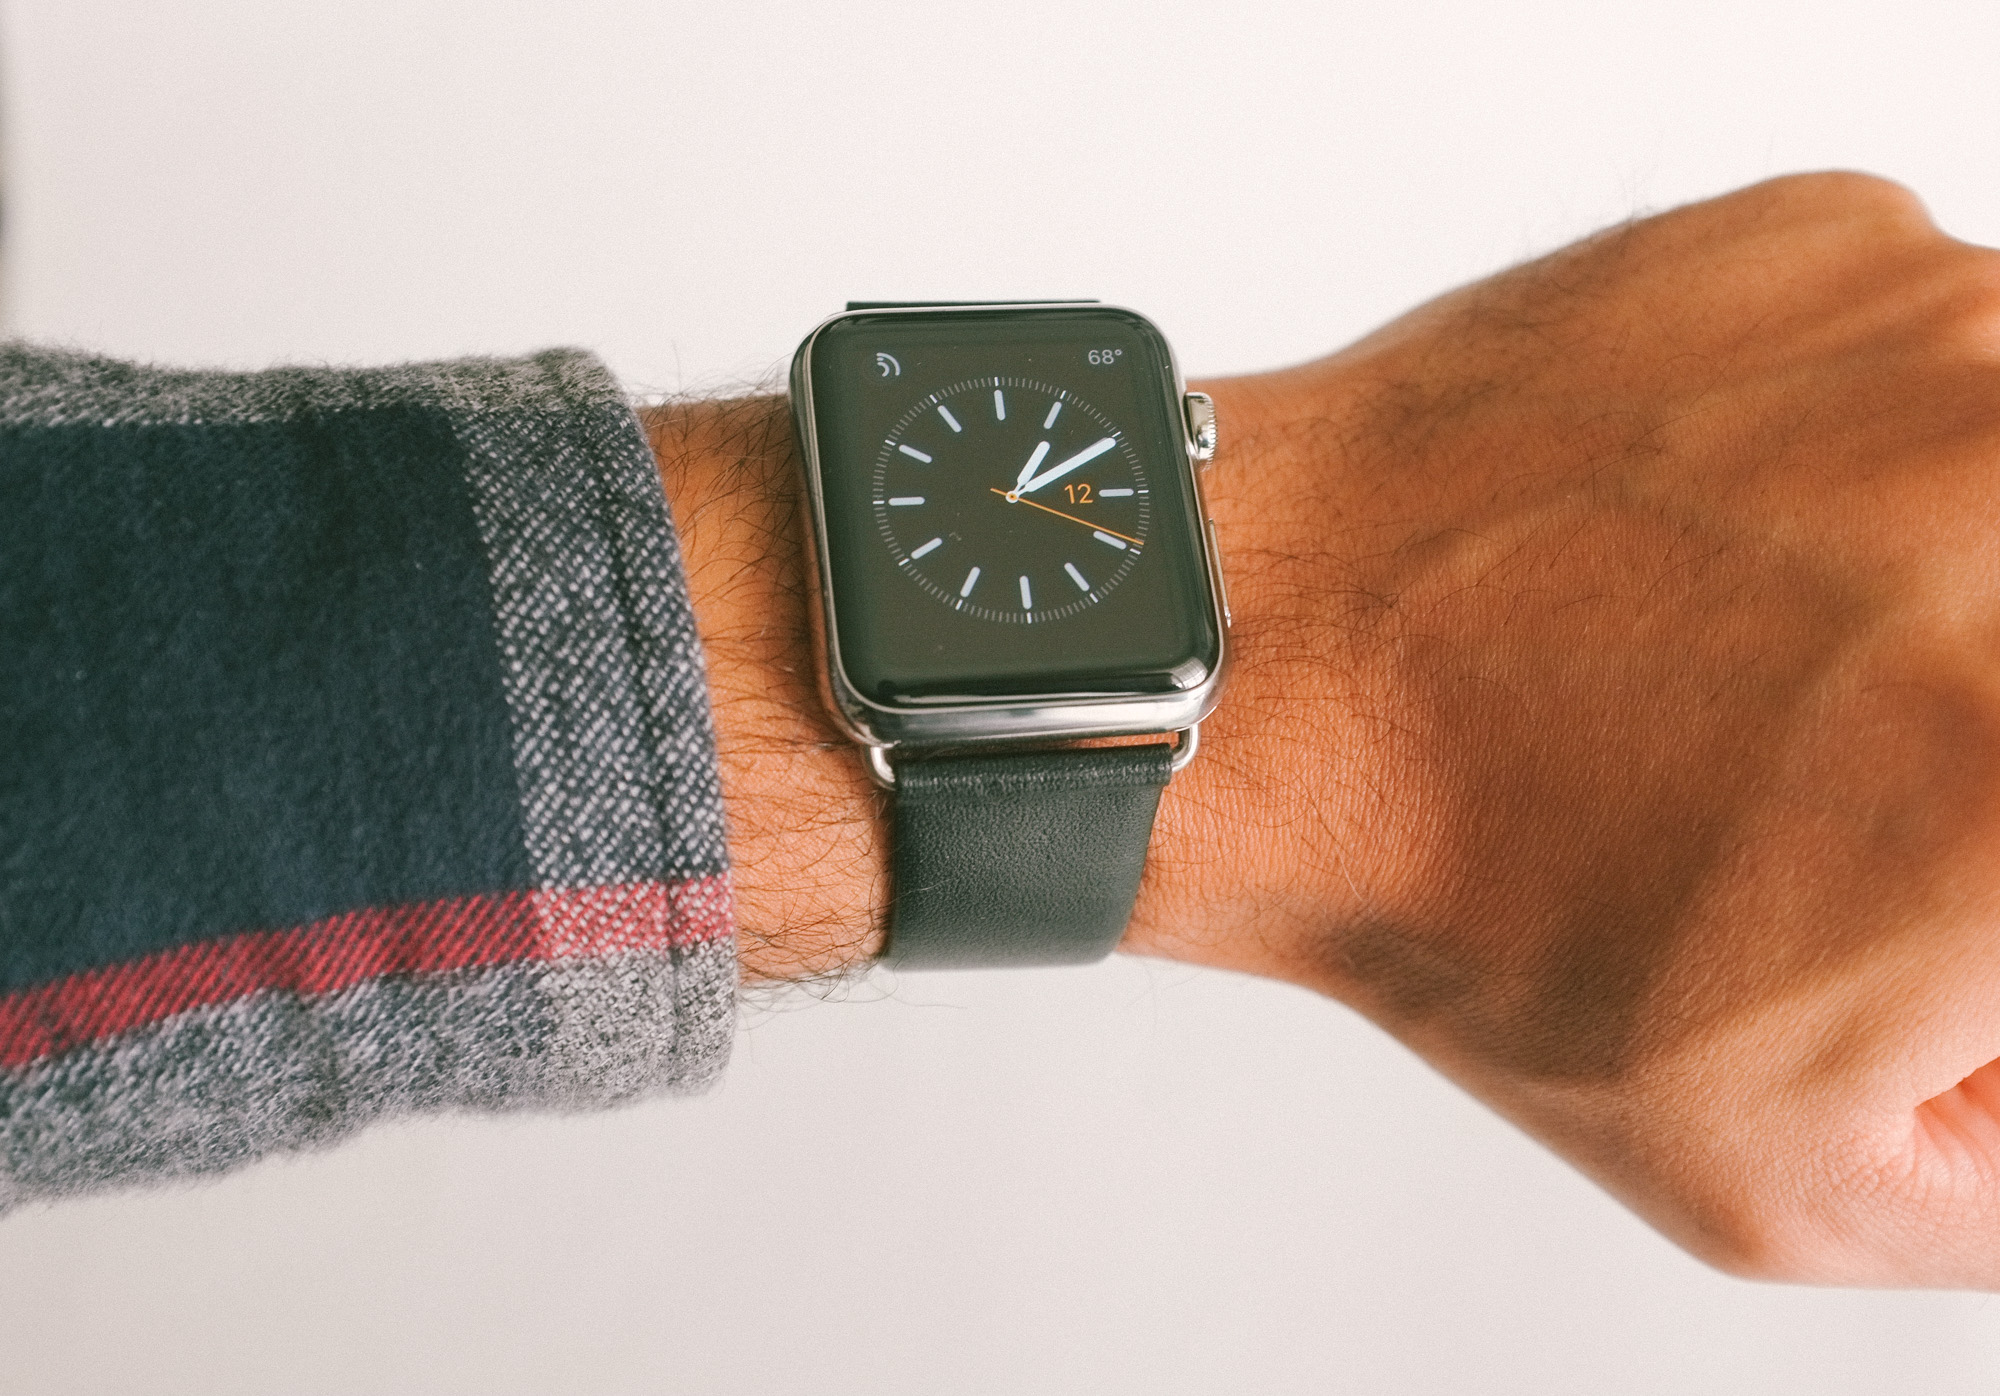 Hands-On with a Replica Apple Watch Classic Buckle